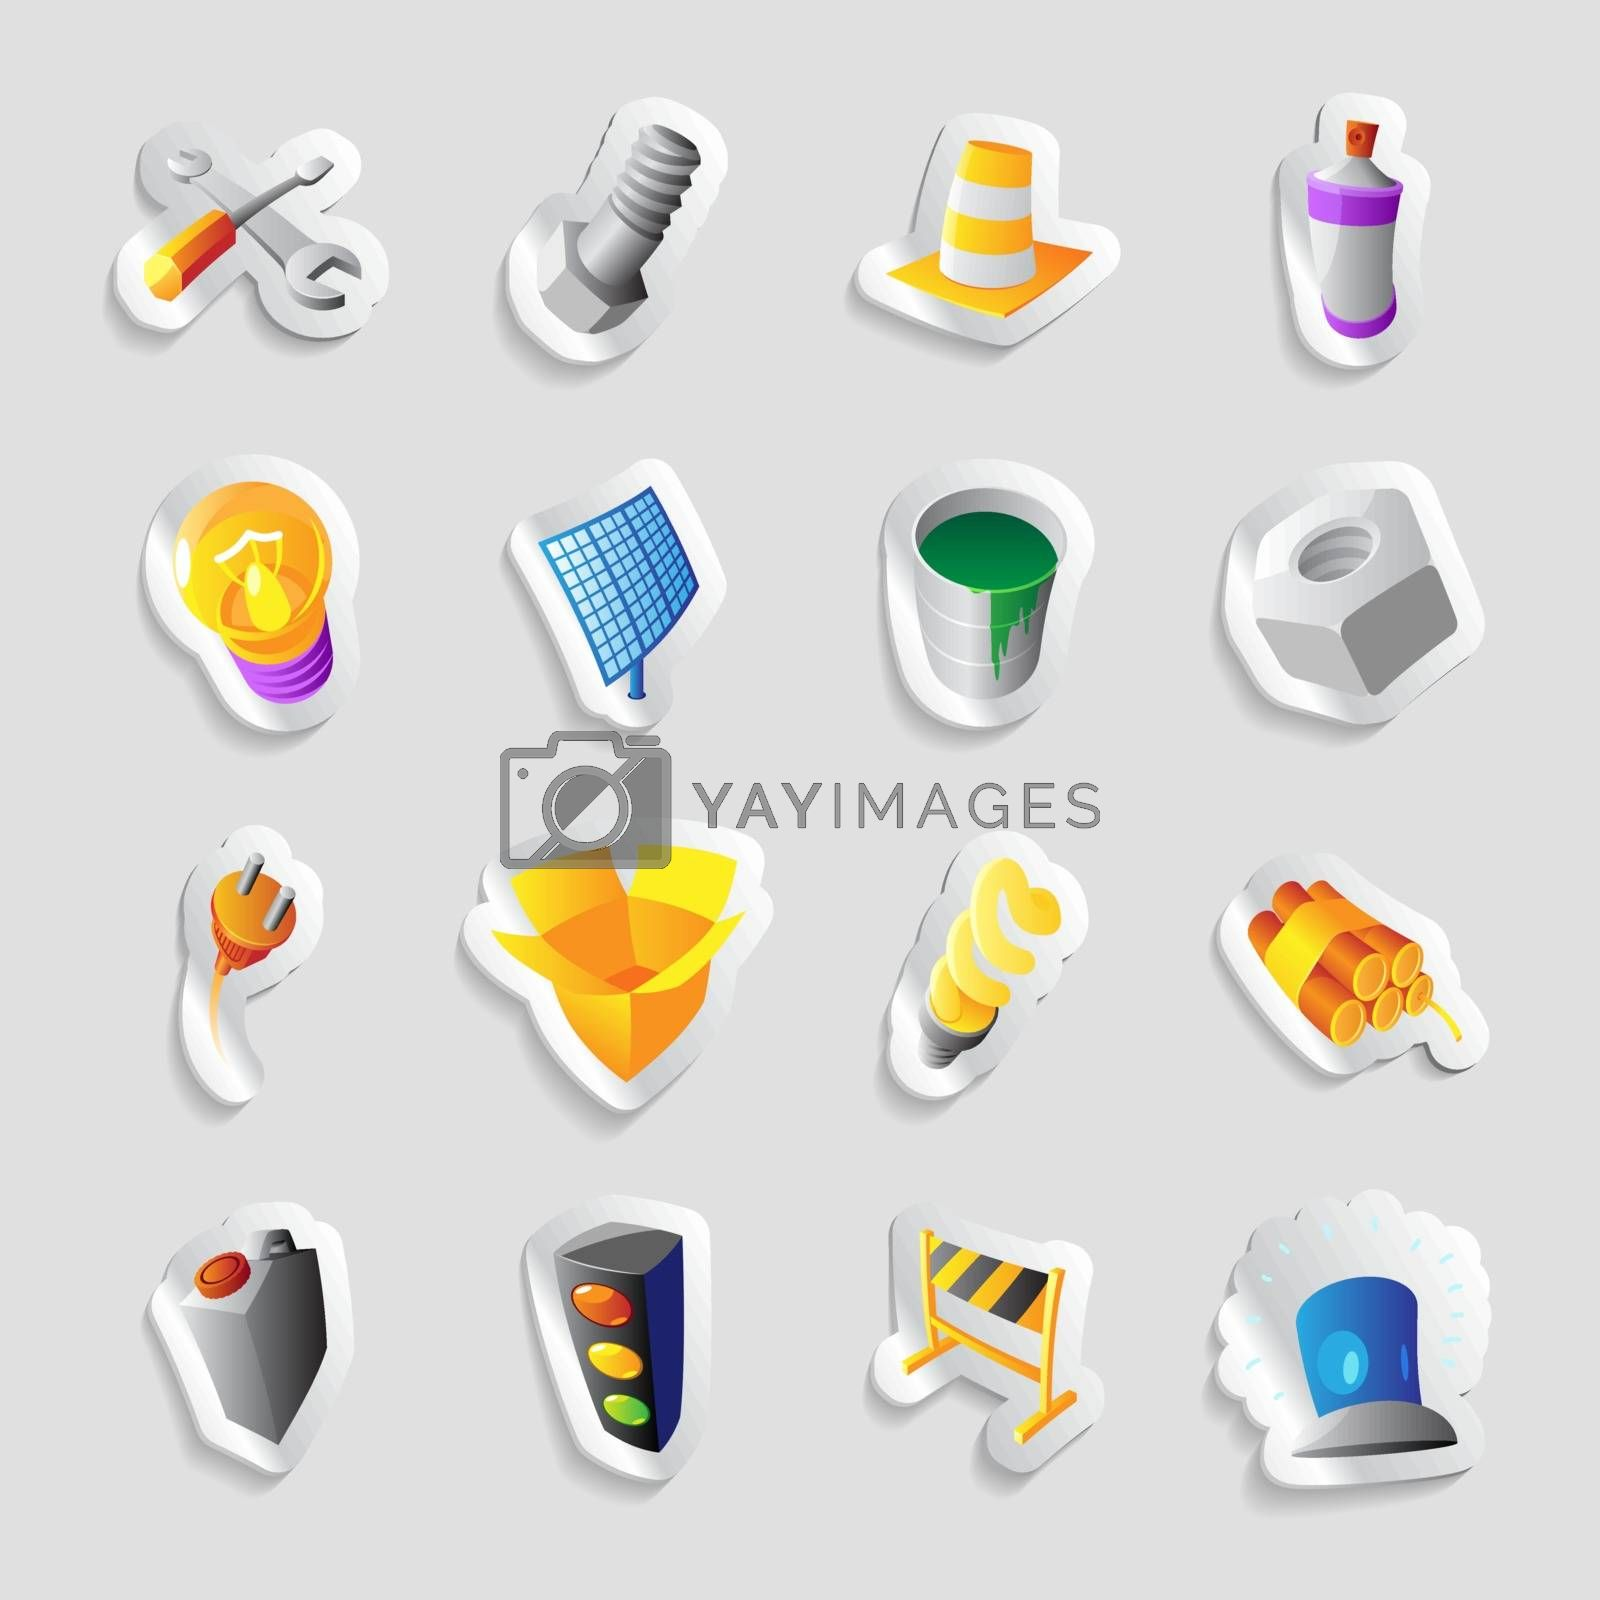 Icons for industry and technology. Vector illustration.